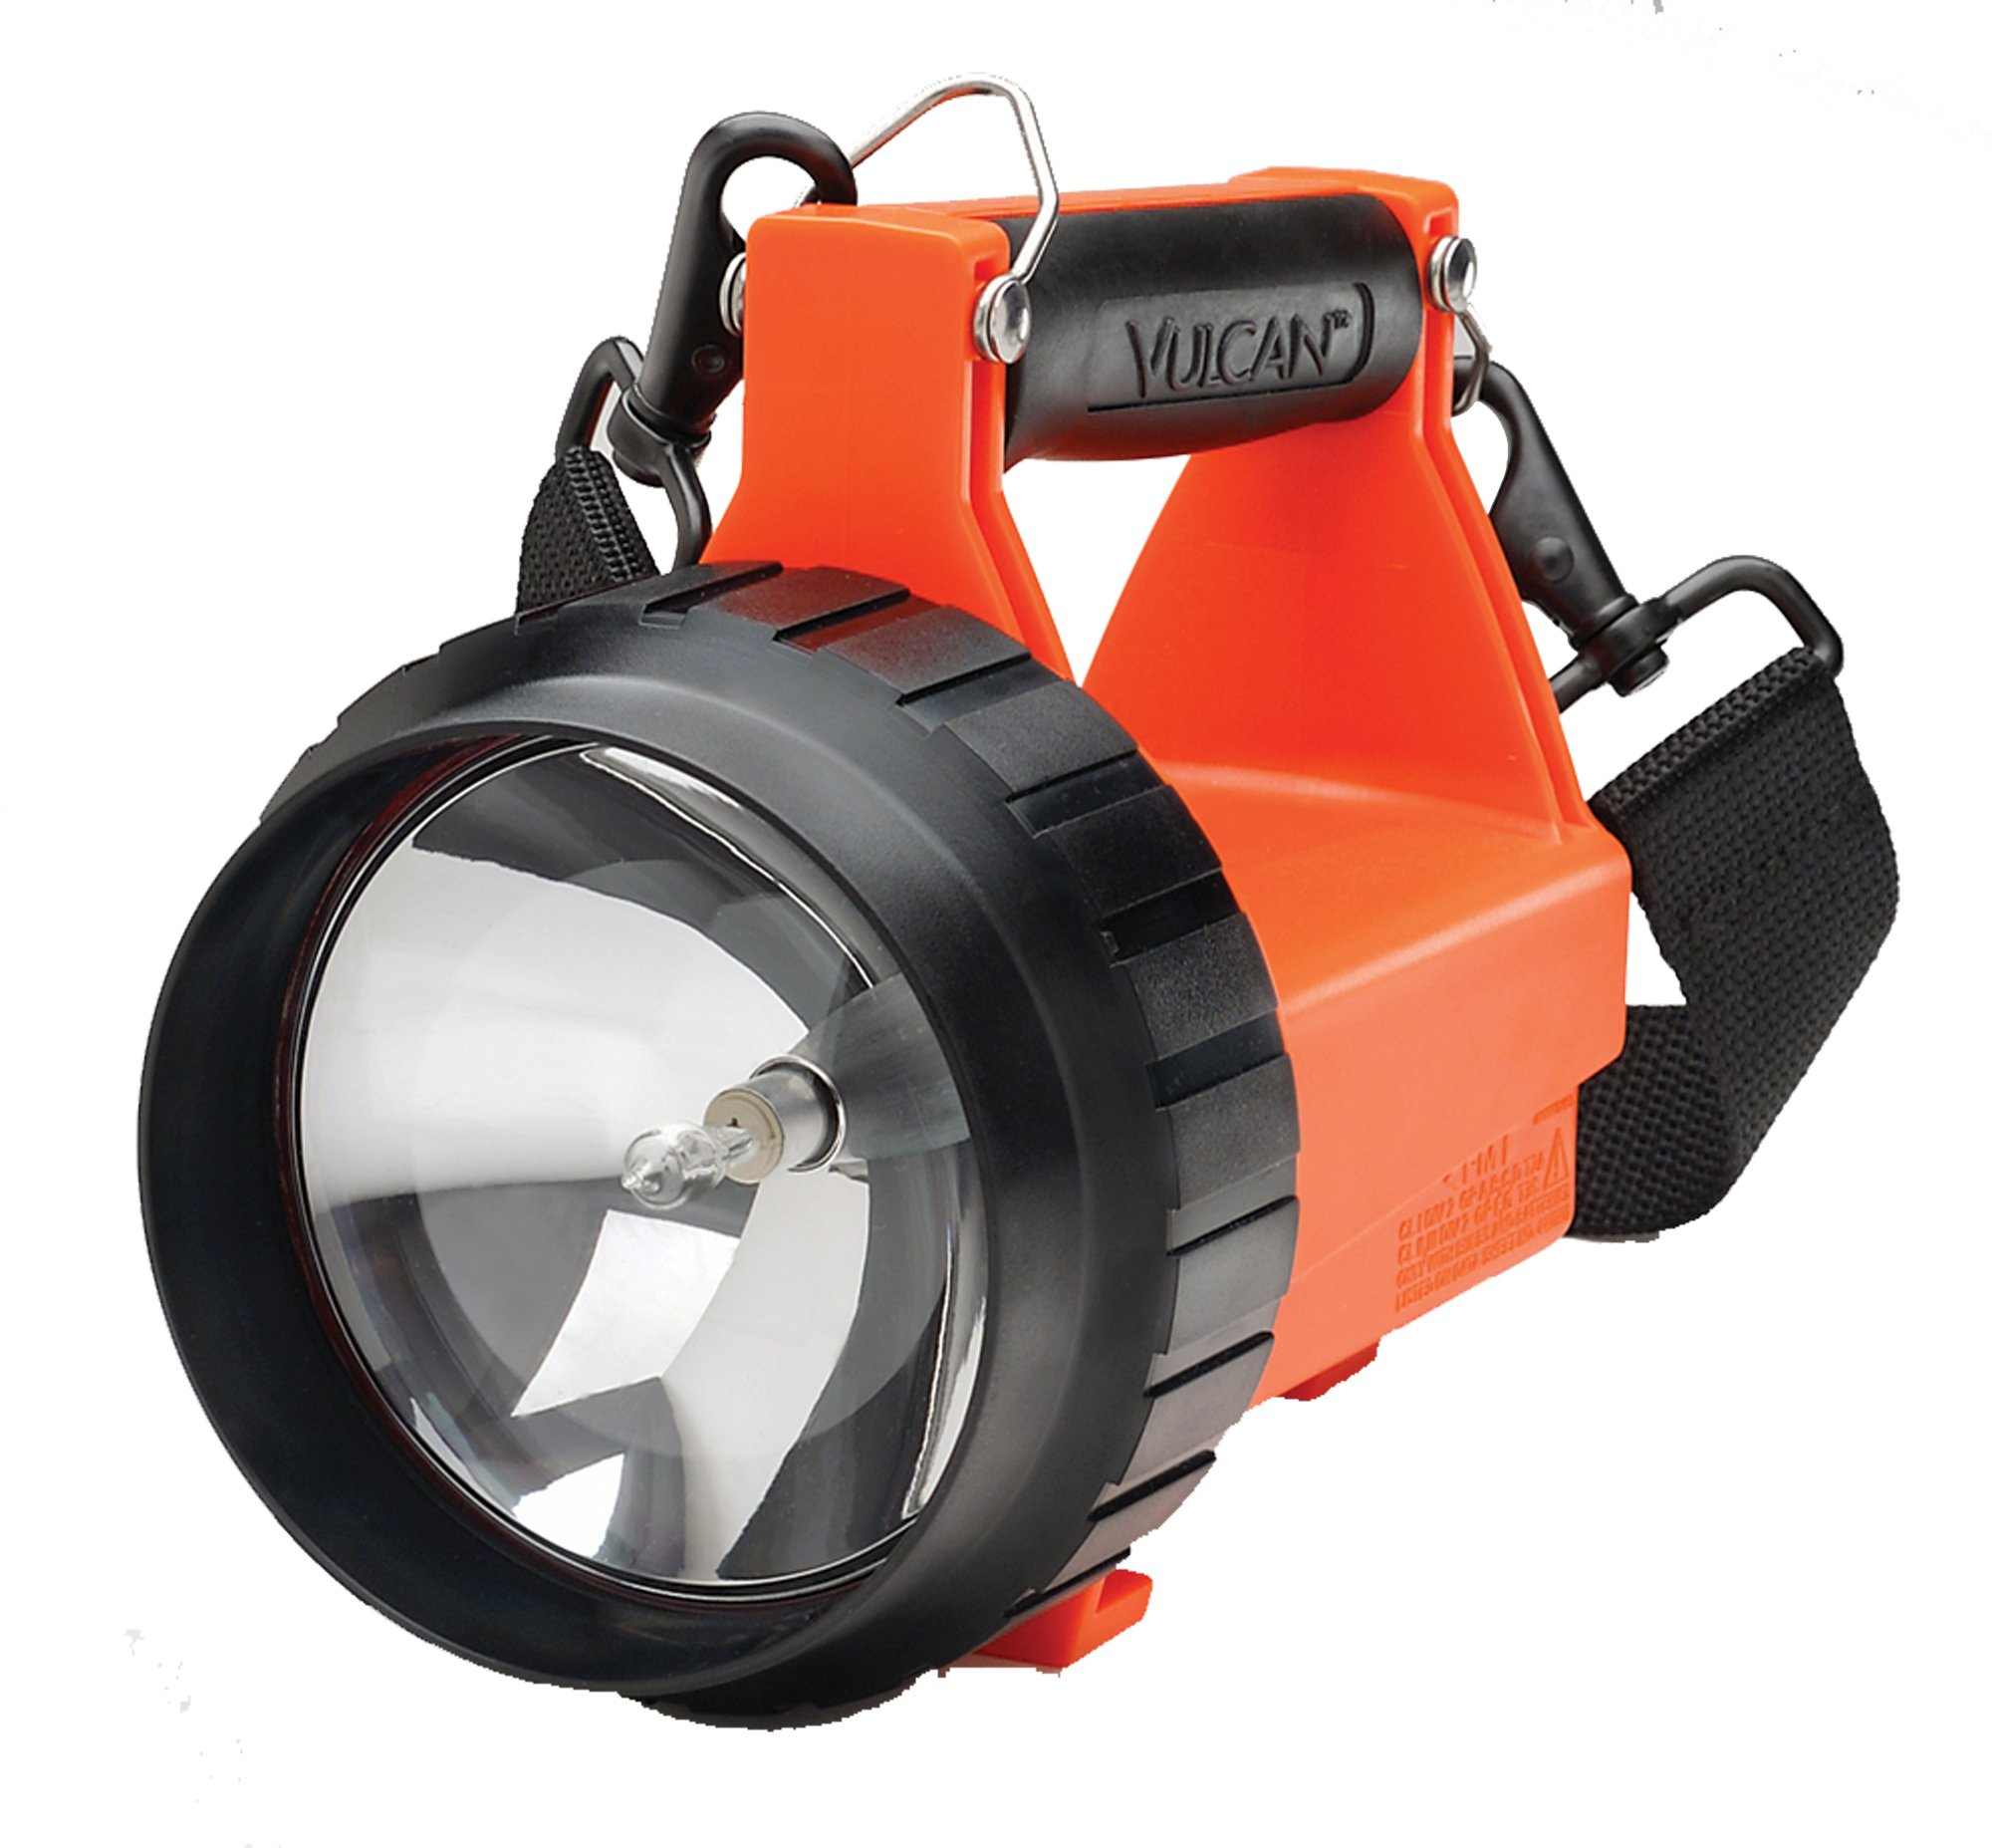 Streamlight 44411 Fire Vulcan Flashlight with Dual Rear LEDs, Quick Release Shoulder Strap and without Charger, Orange